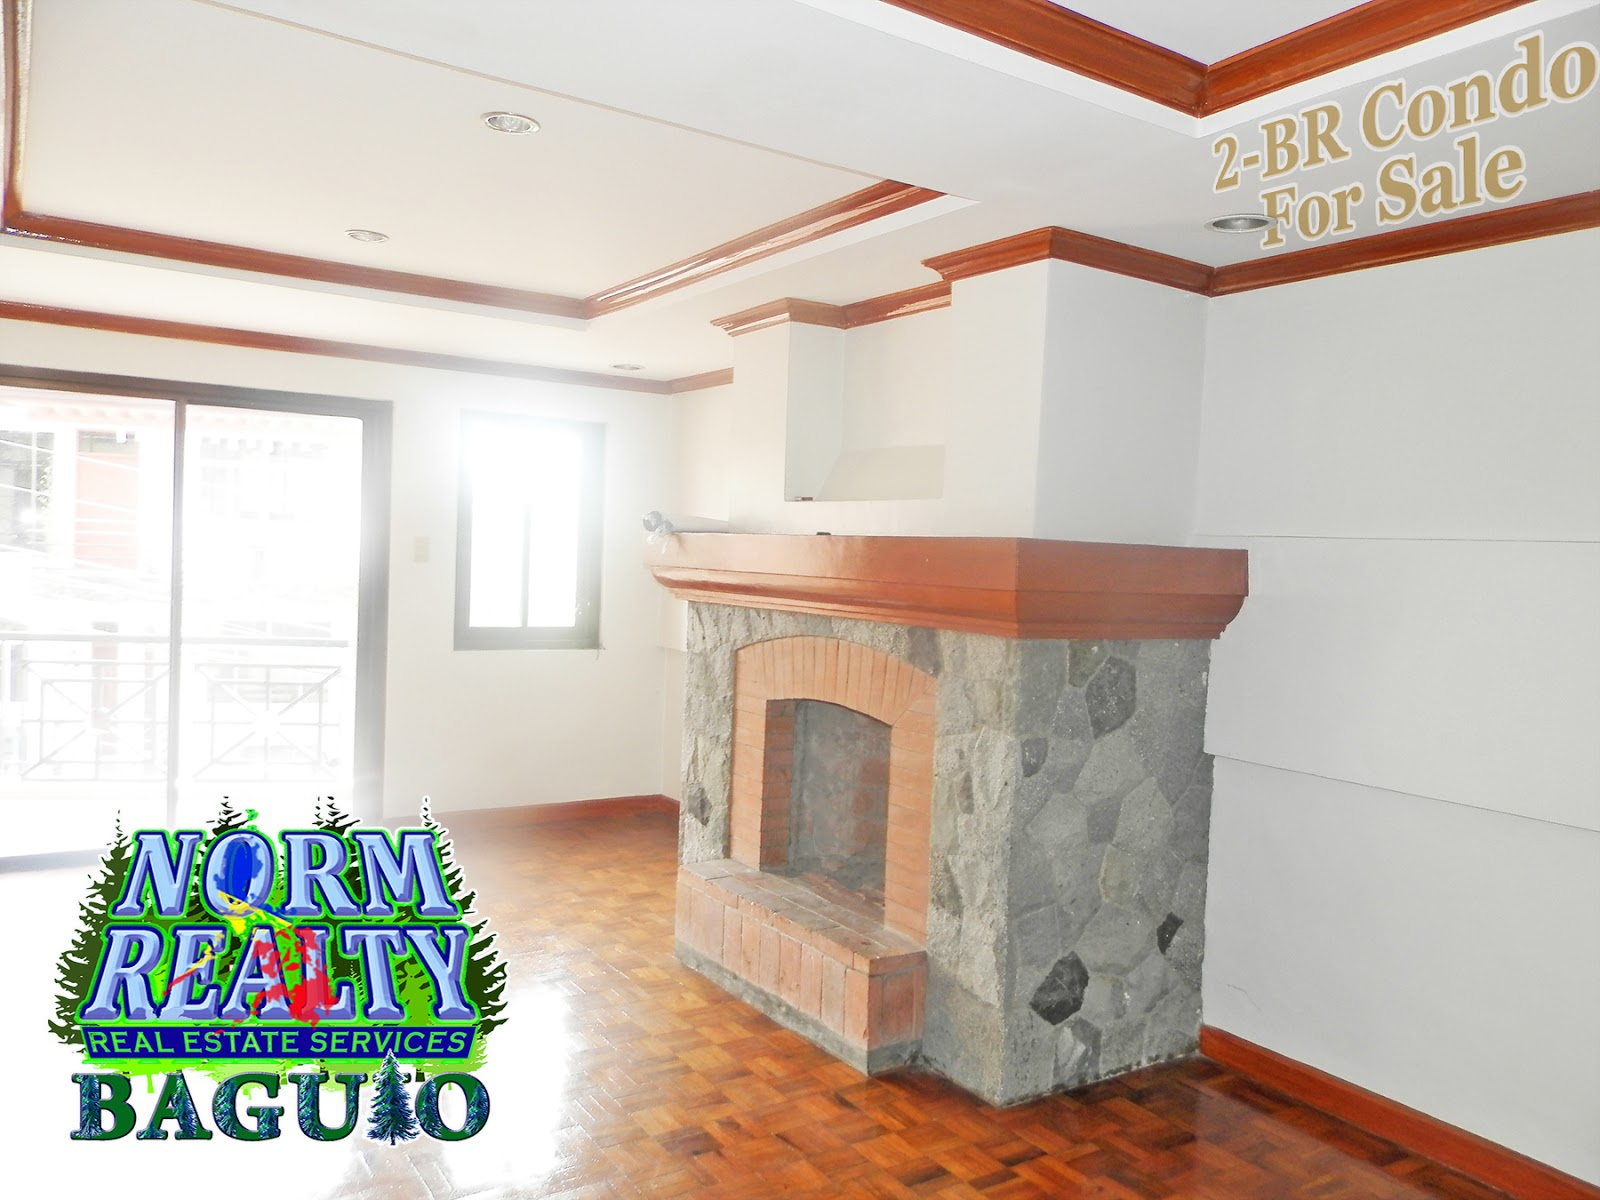 Normrealty baguio baguio pre owned newly renovated and unfurnished baguio pre owned newly renovated and unfurnished 2 br condominium unit inside a peaceful gated subdivision along jeepney line and 24 hour transportation solutioingenieria Choice Image